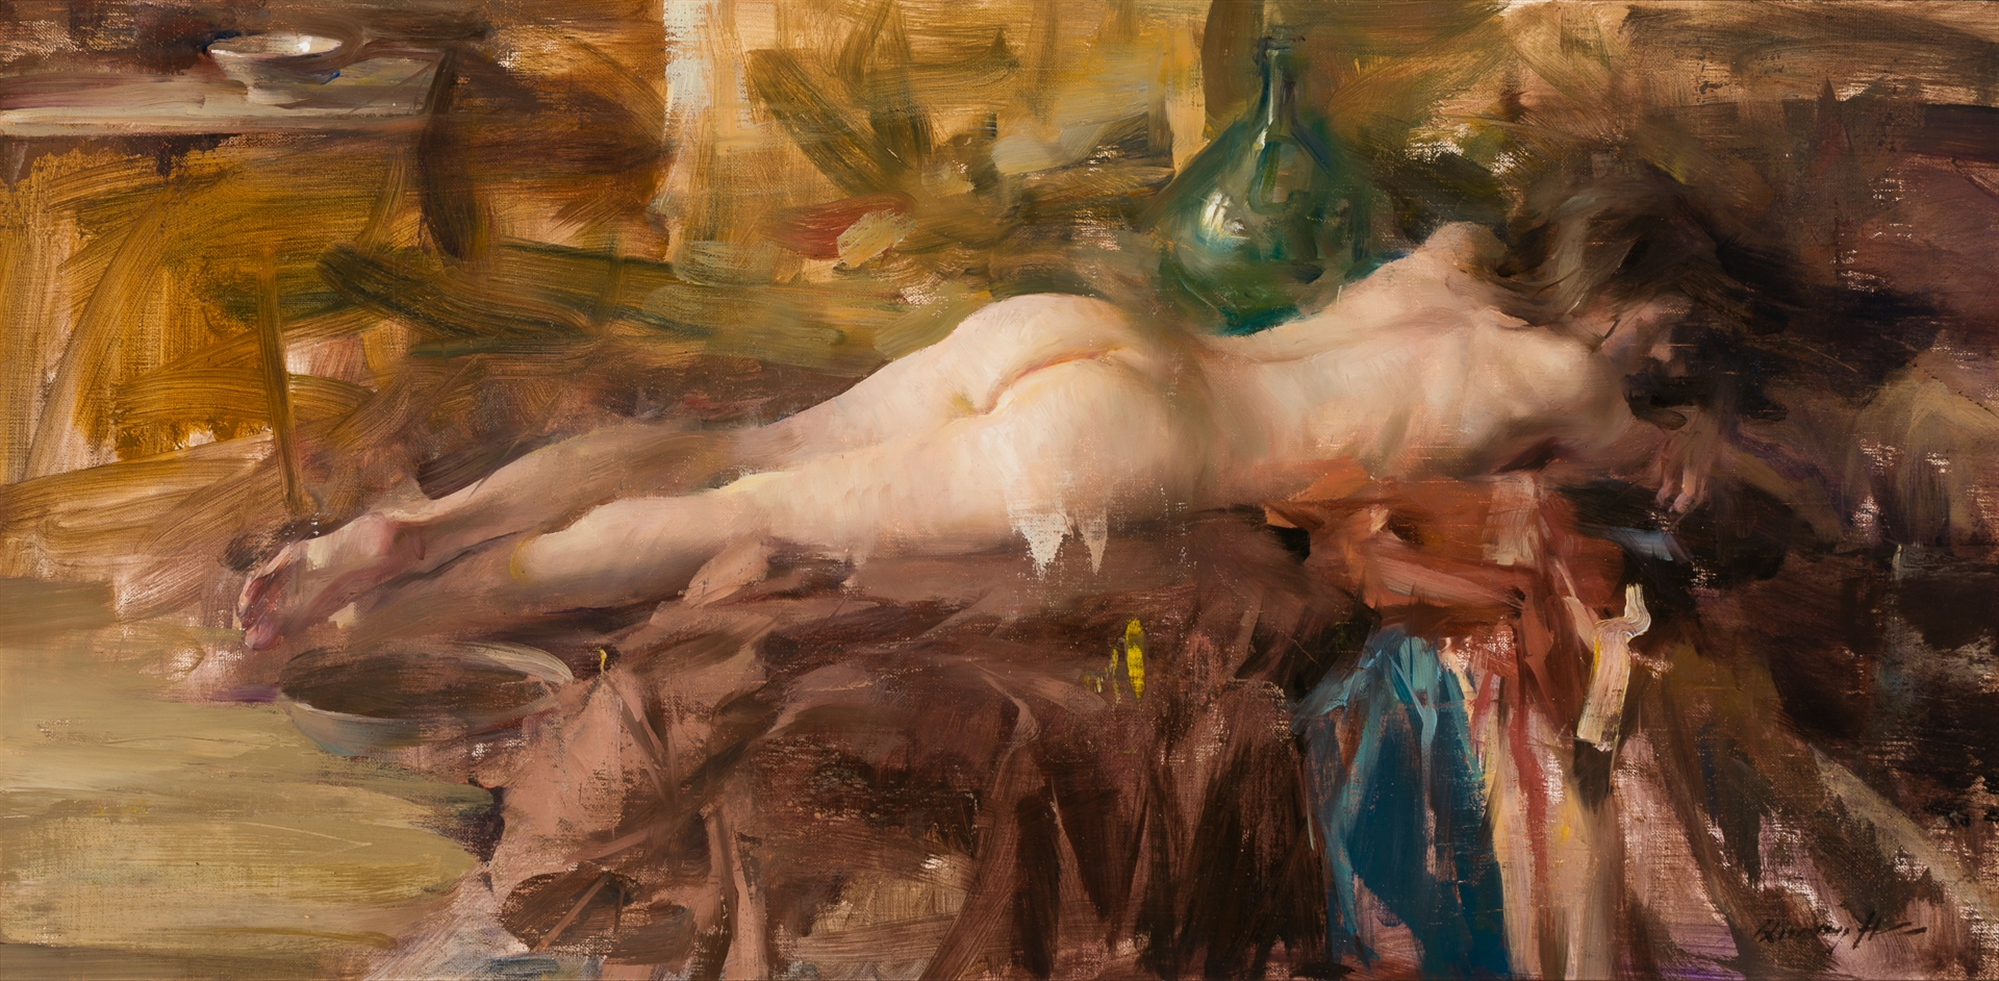 Reclining Figure by Quang Ho